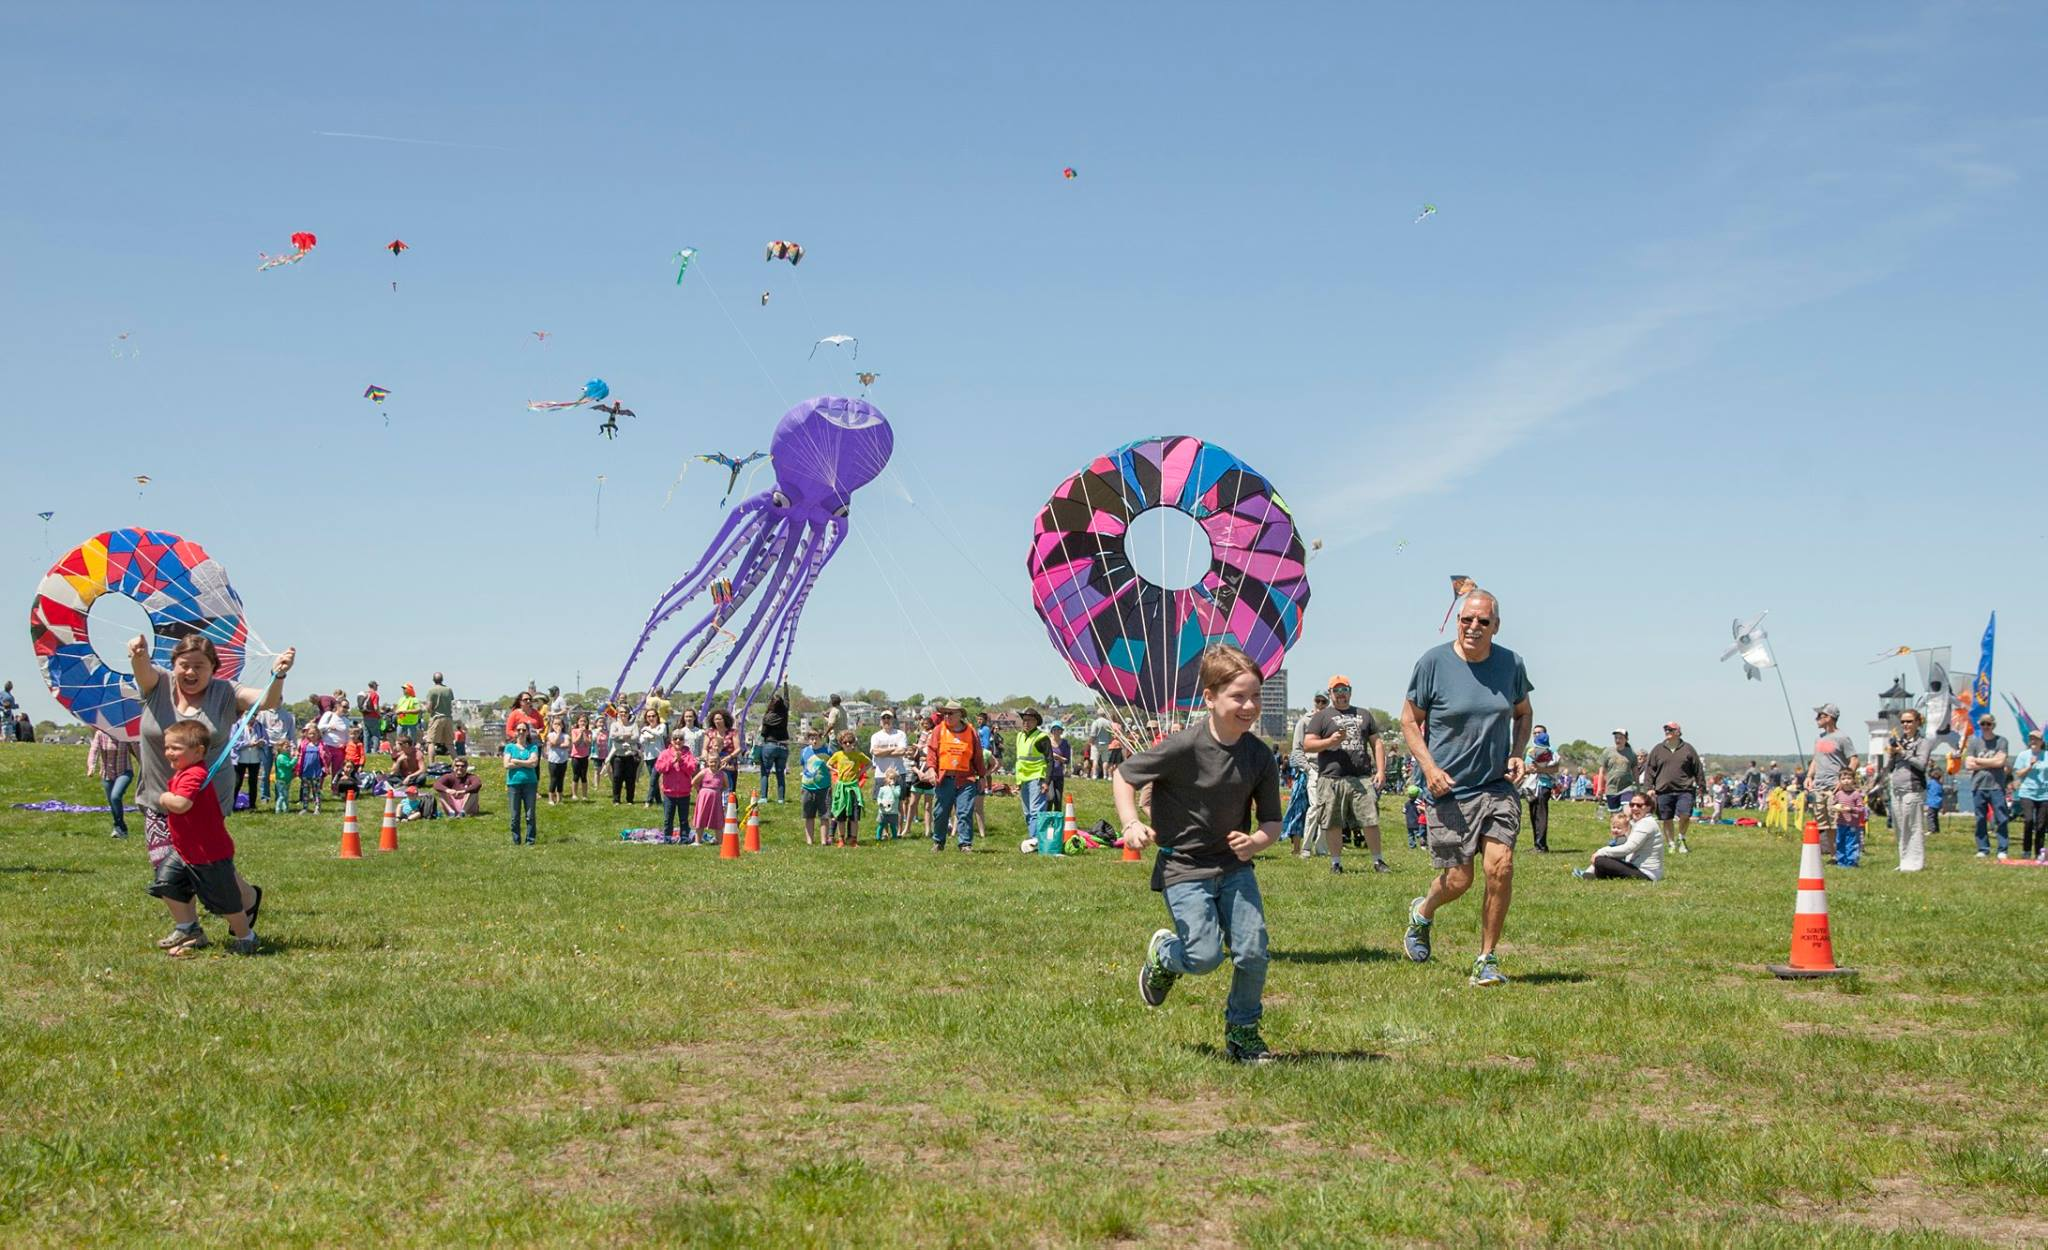 Annually, many events take place in Bug Light park, from the Bug Light 5k to the Kite Festival